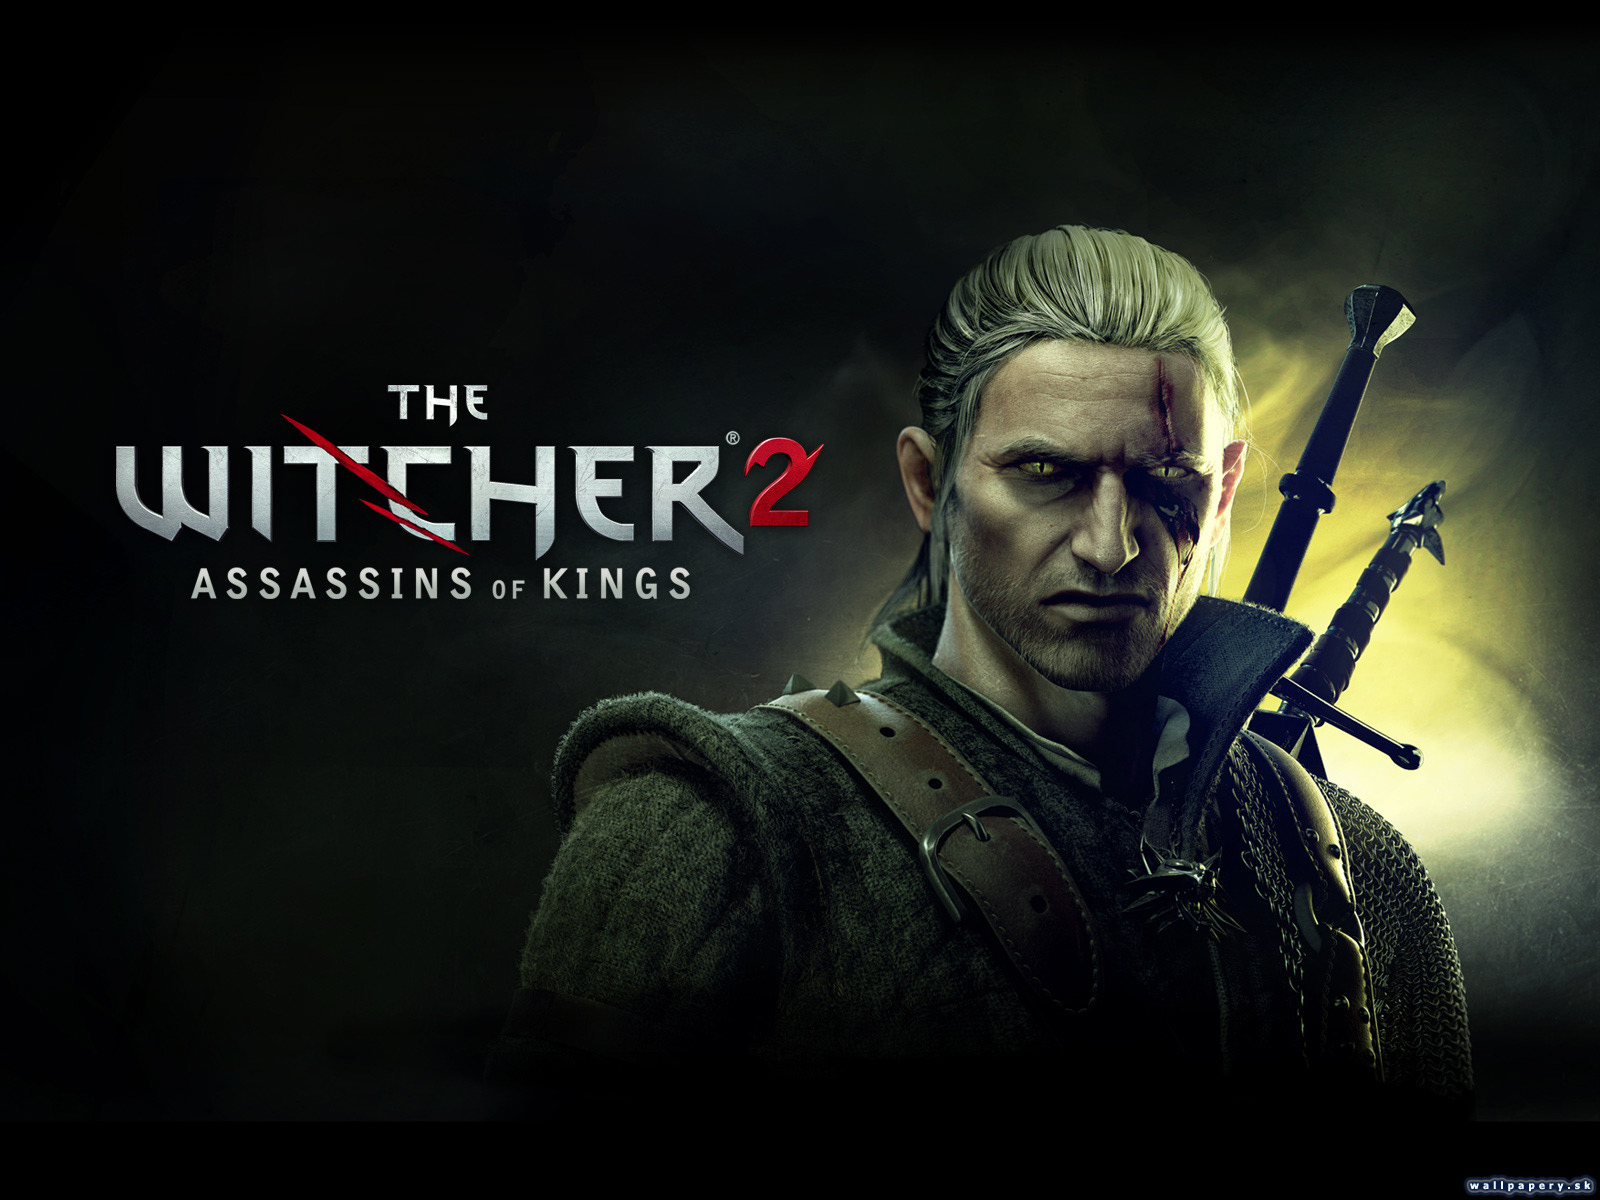 The Witcher 2: Assassins of Kings - wallpaper 1